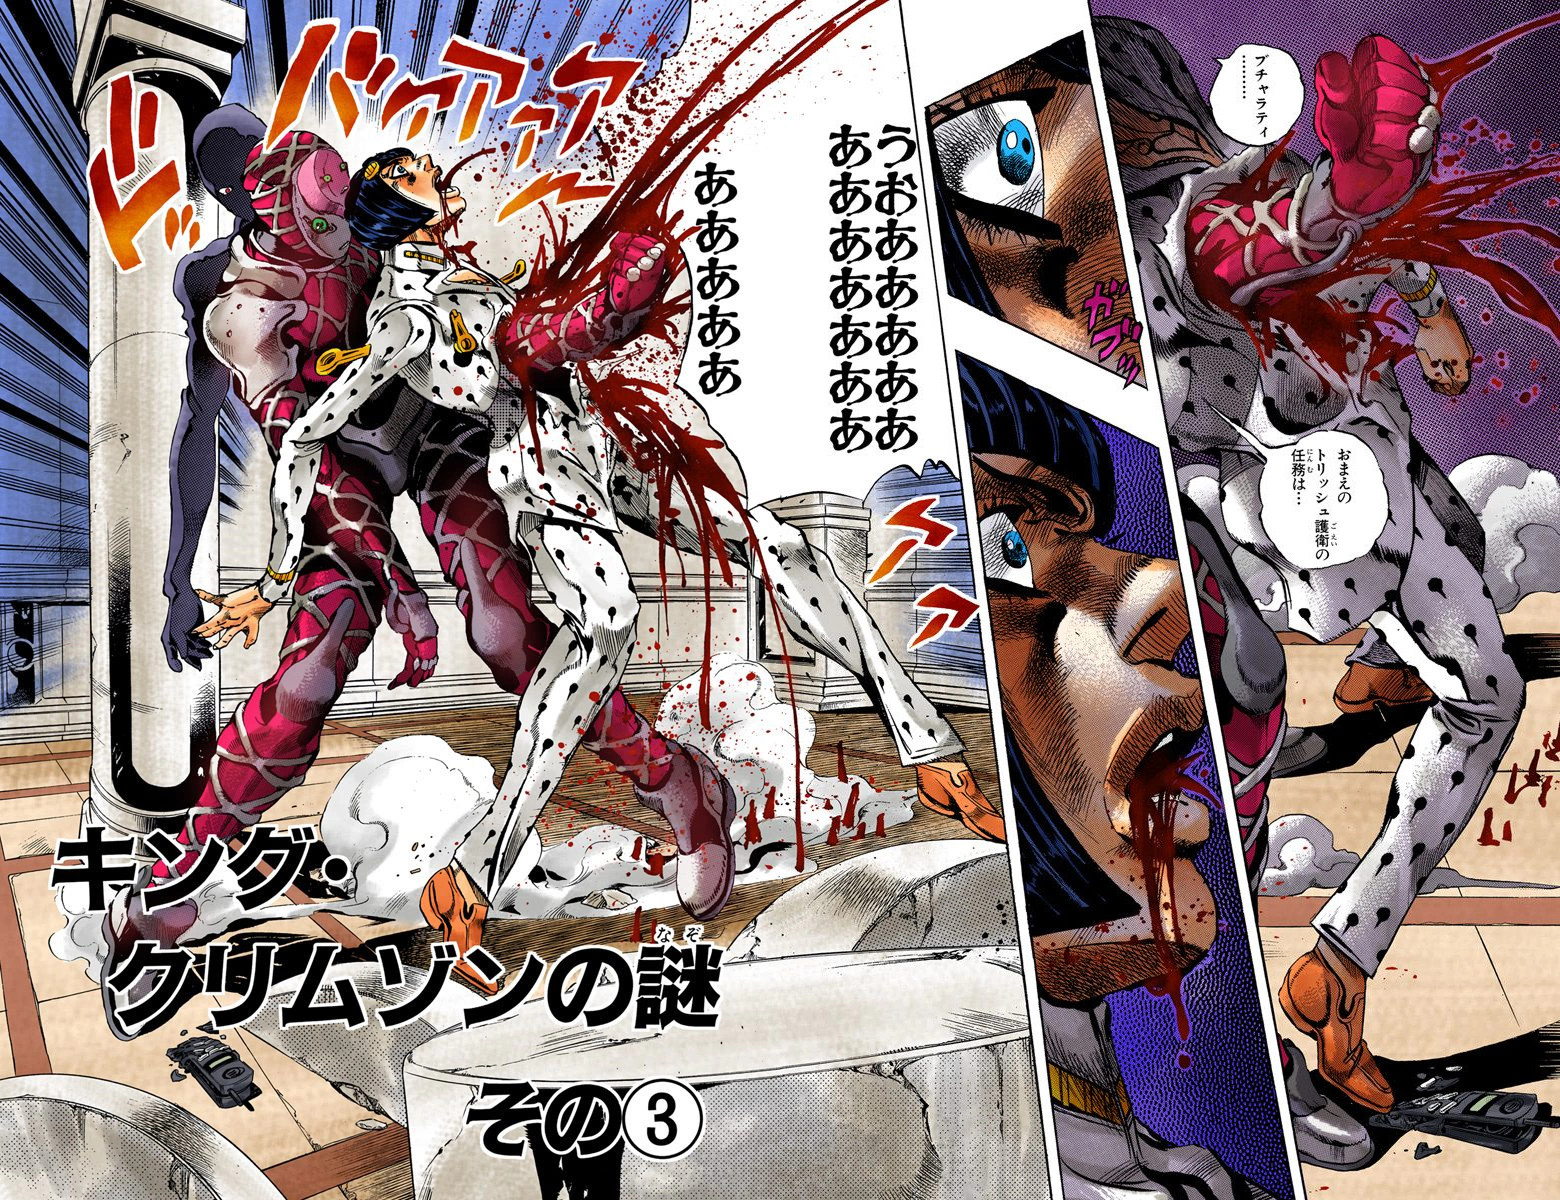 Image - Chapter 520 Cover B.jpg